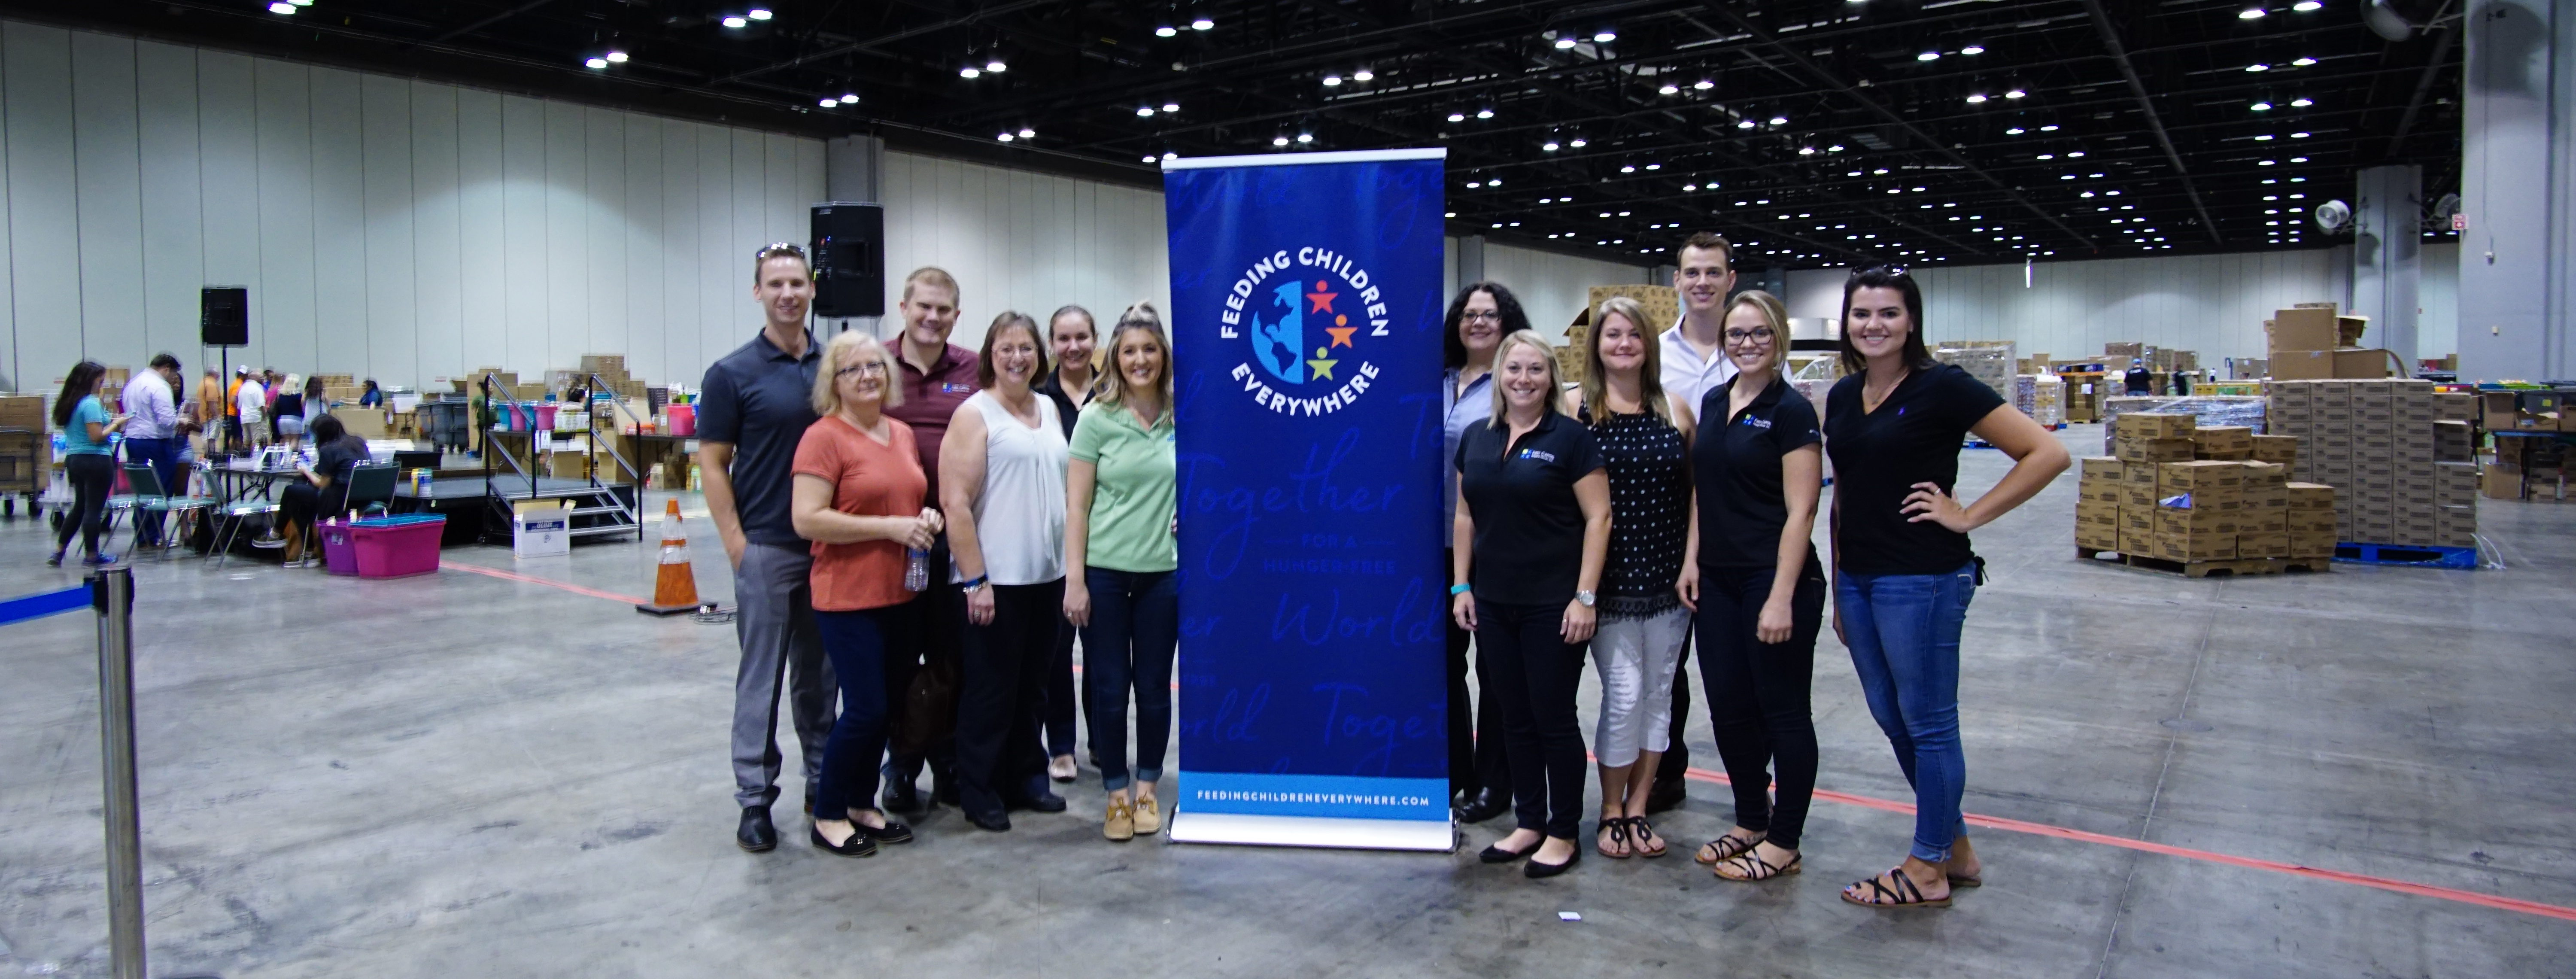 Image of the FCPG team who helped pack meals for Hope for Puerto Rico.